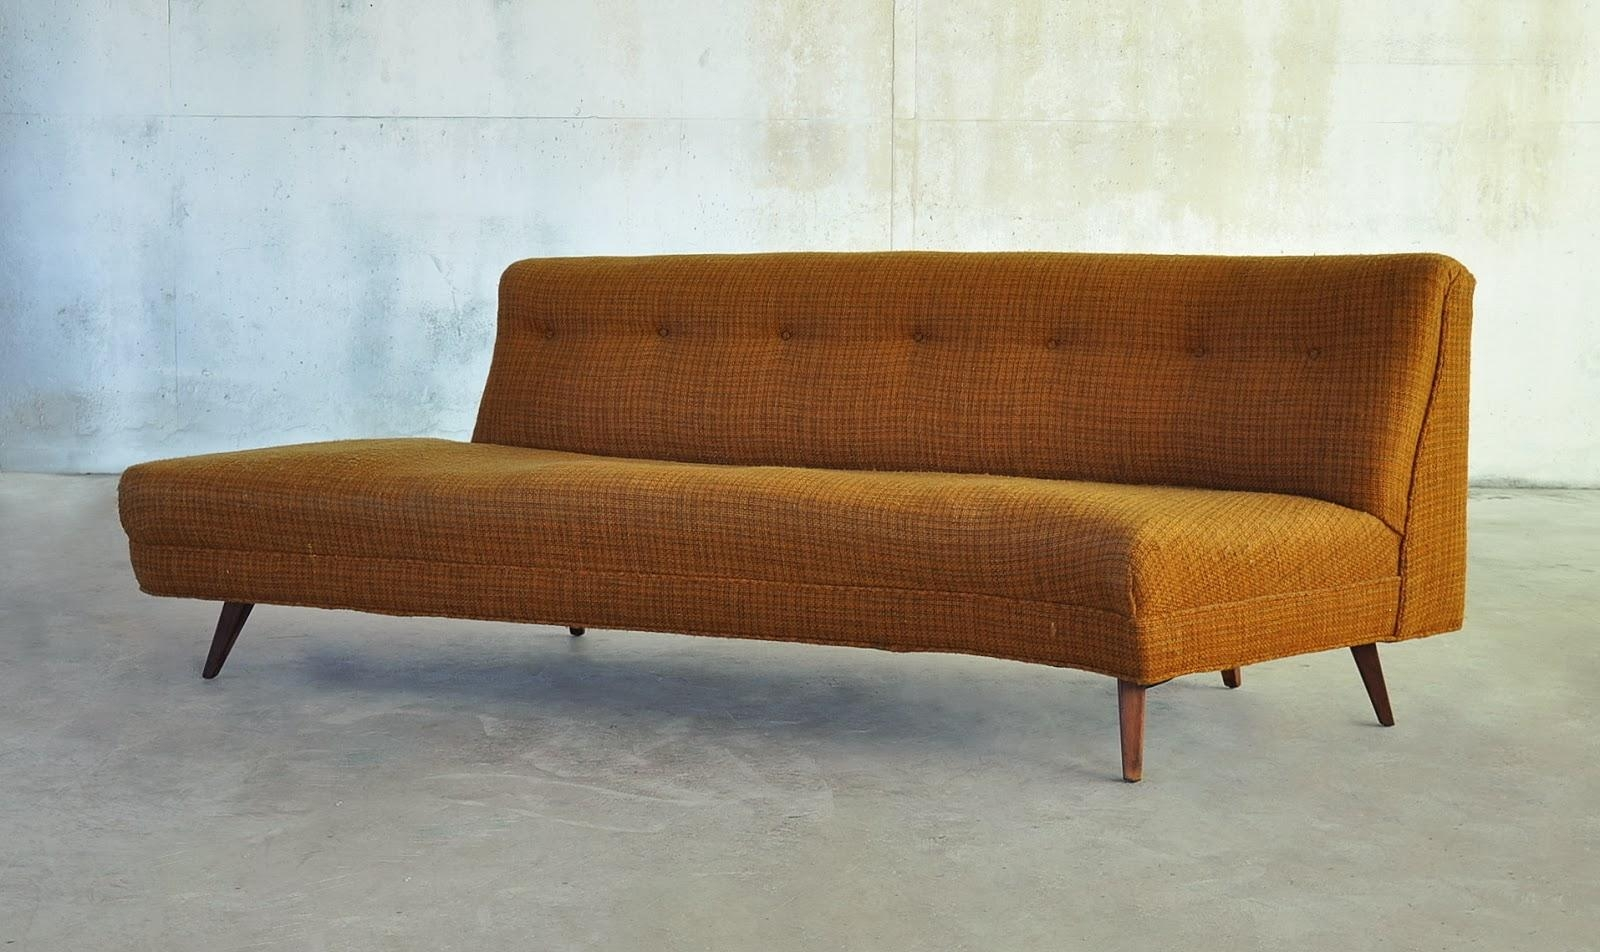 Select Modern: Mid Century Modern Sectional Sofa Regarding Mid Century Modern Sectional (View 11 of 20)